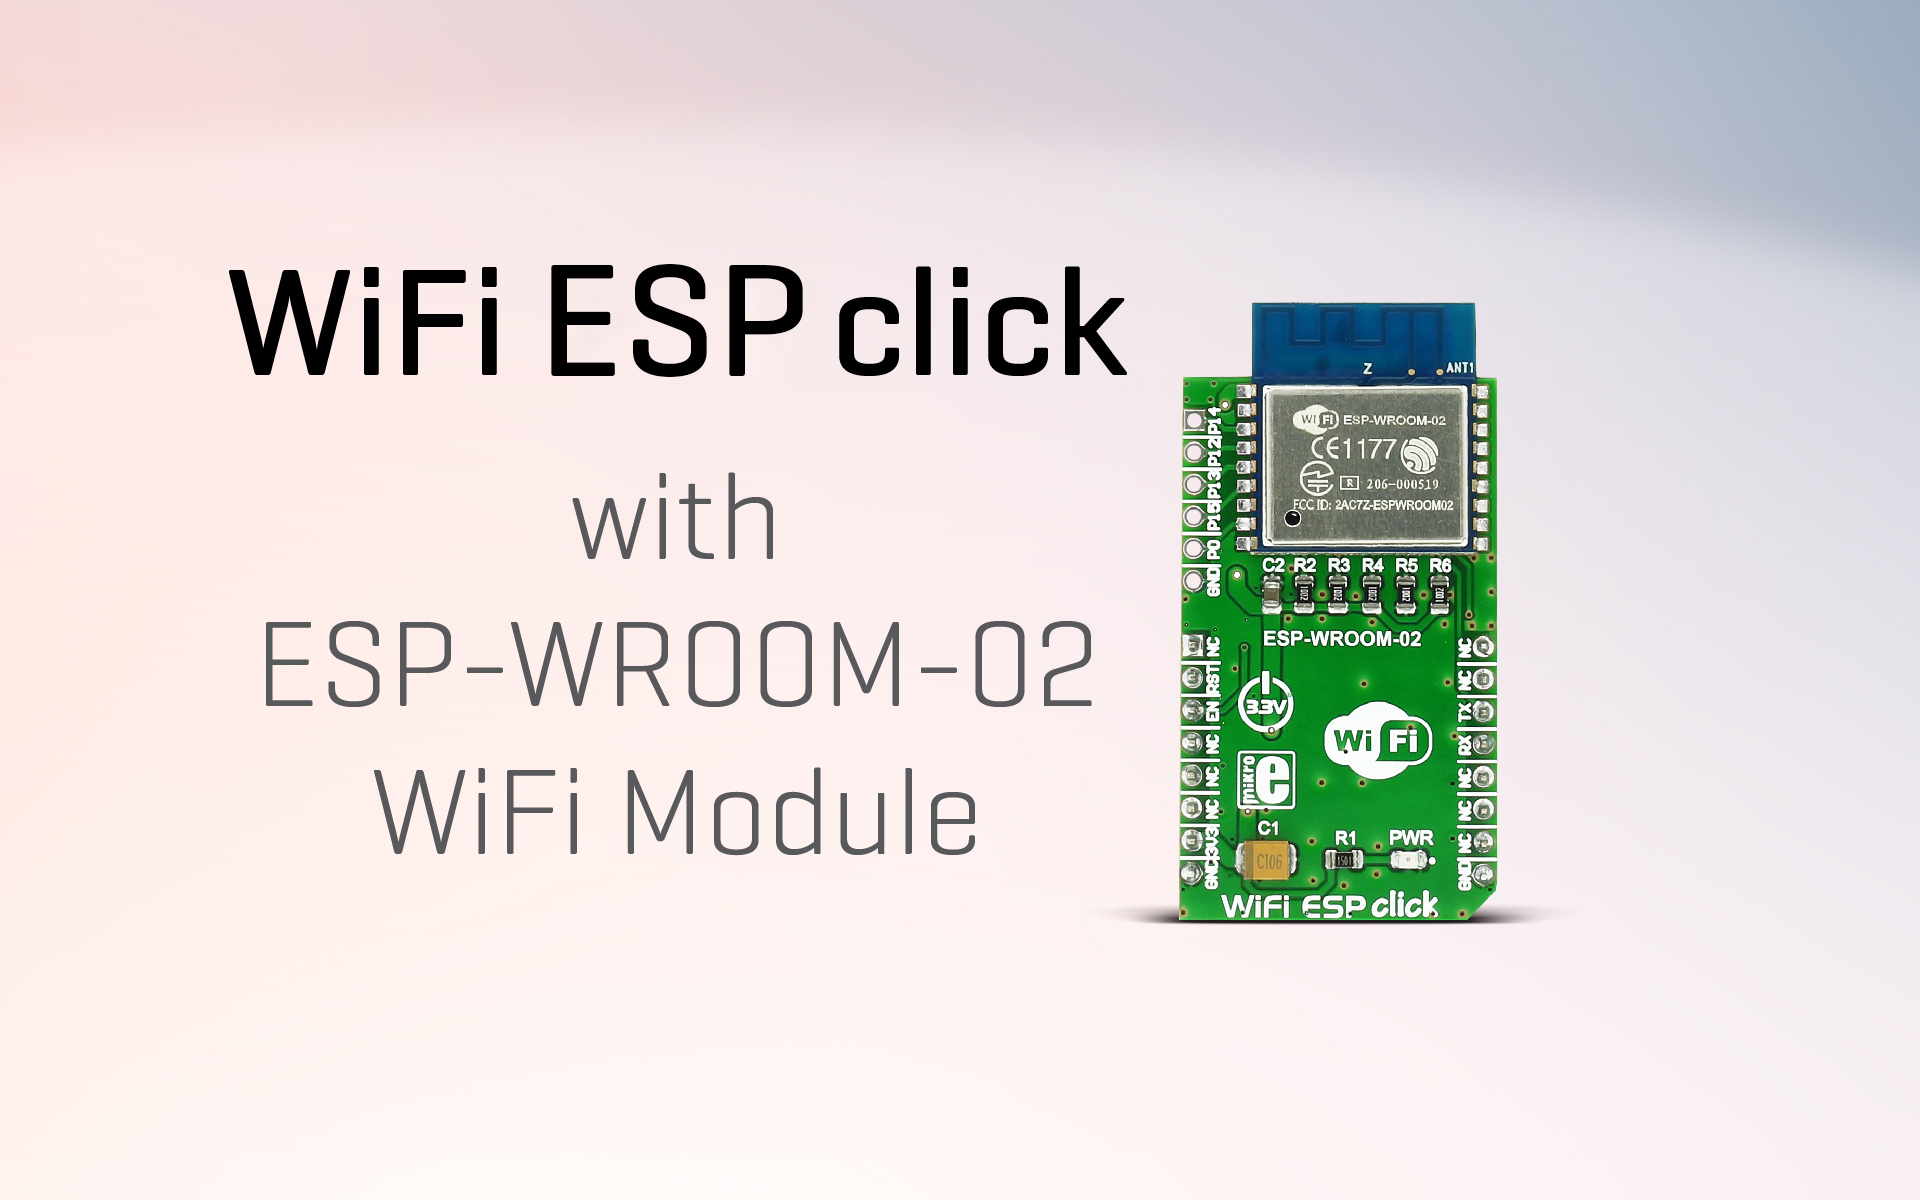 WiFi ESP click - be a part of the connected world